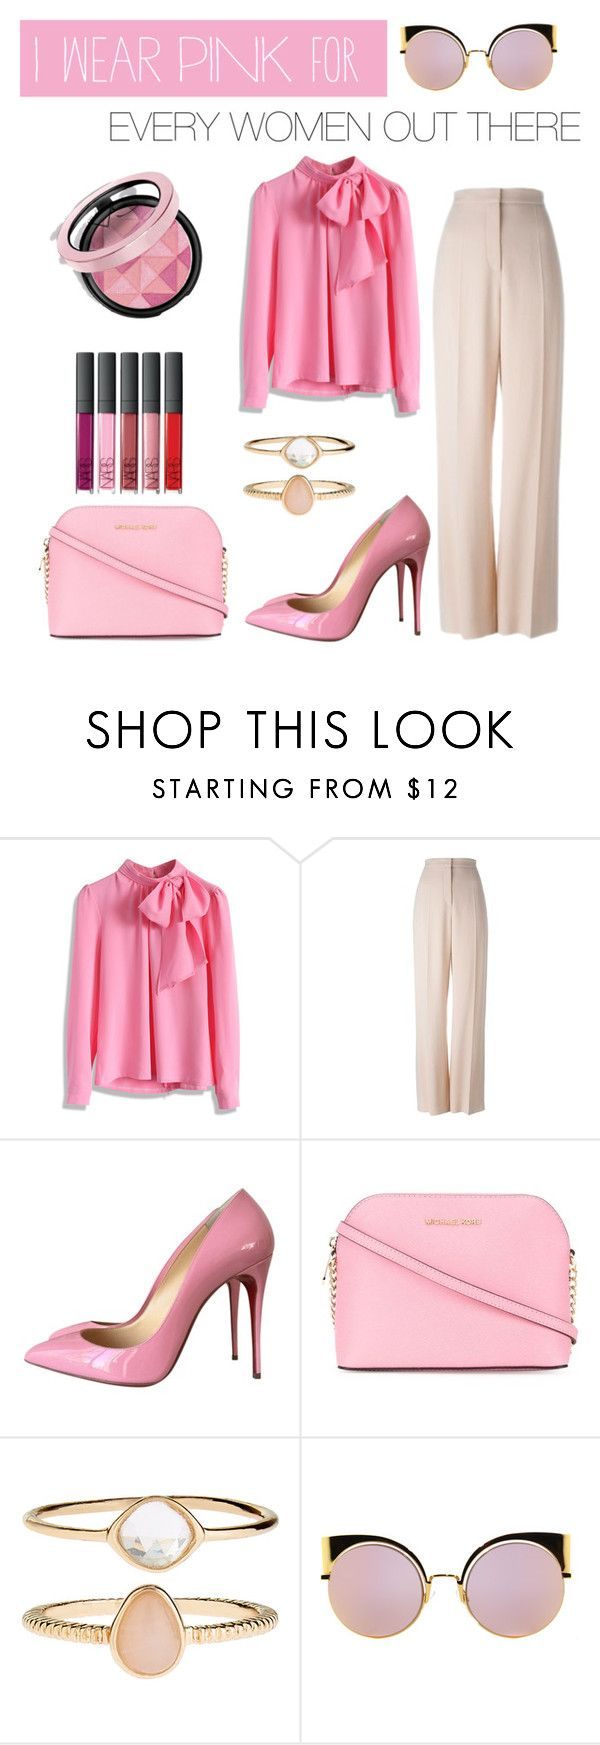 """#IWEARPINKFOR... - Contest Entry"" by pytricia on Polyvore featuring Chicwish, STELLA McCARTNEY, Christian Louboutin, MICHAEL Michael Kors, Accessorize and Fendi"